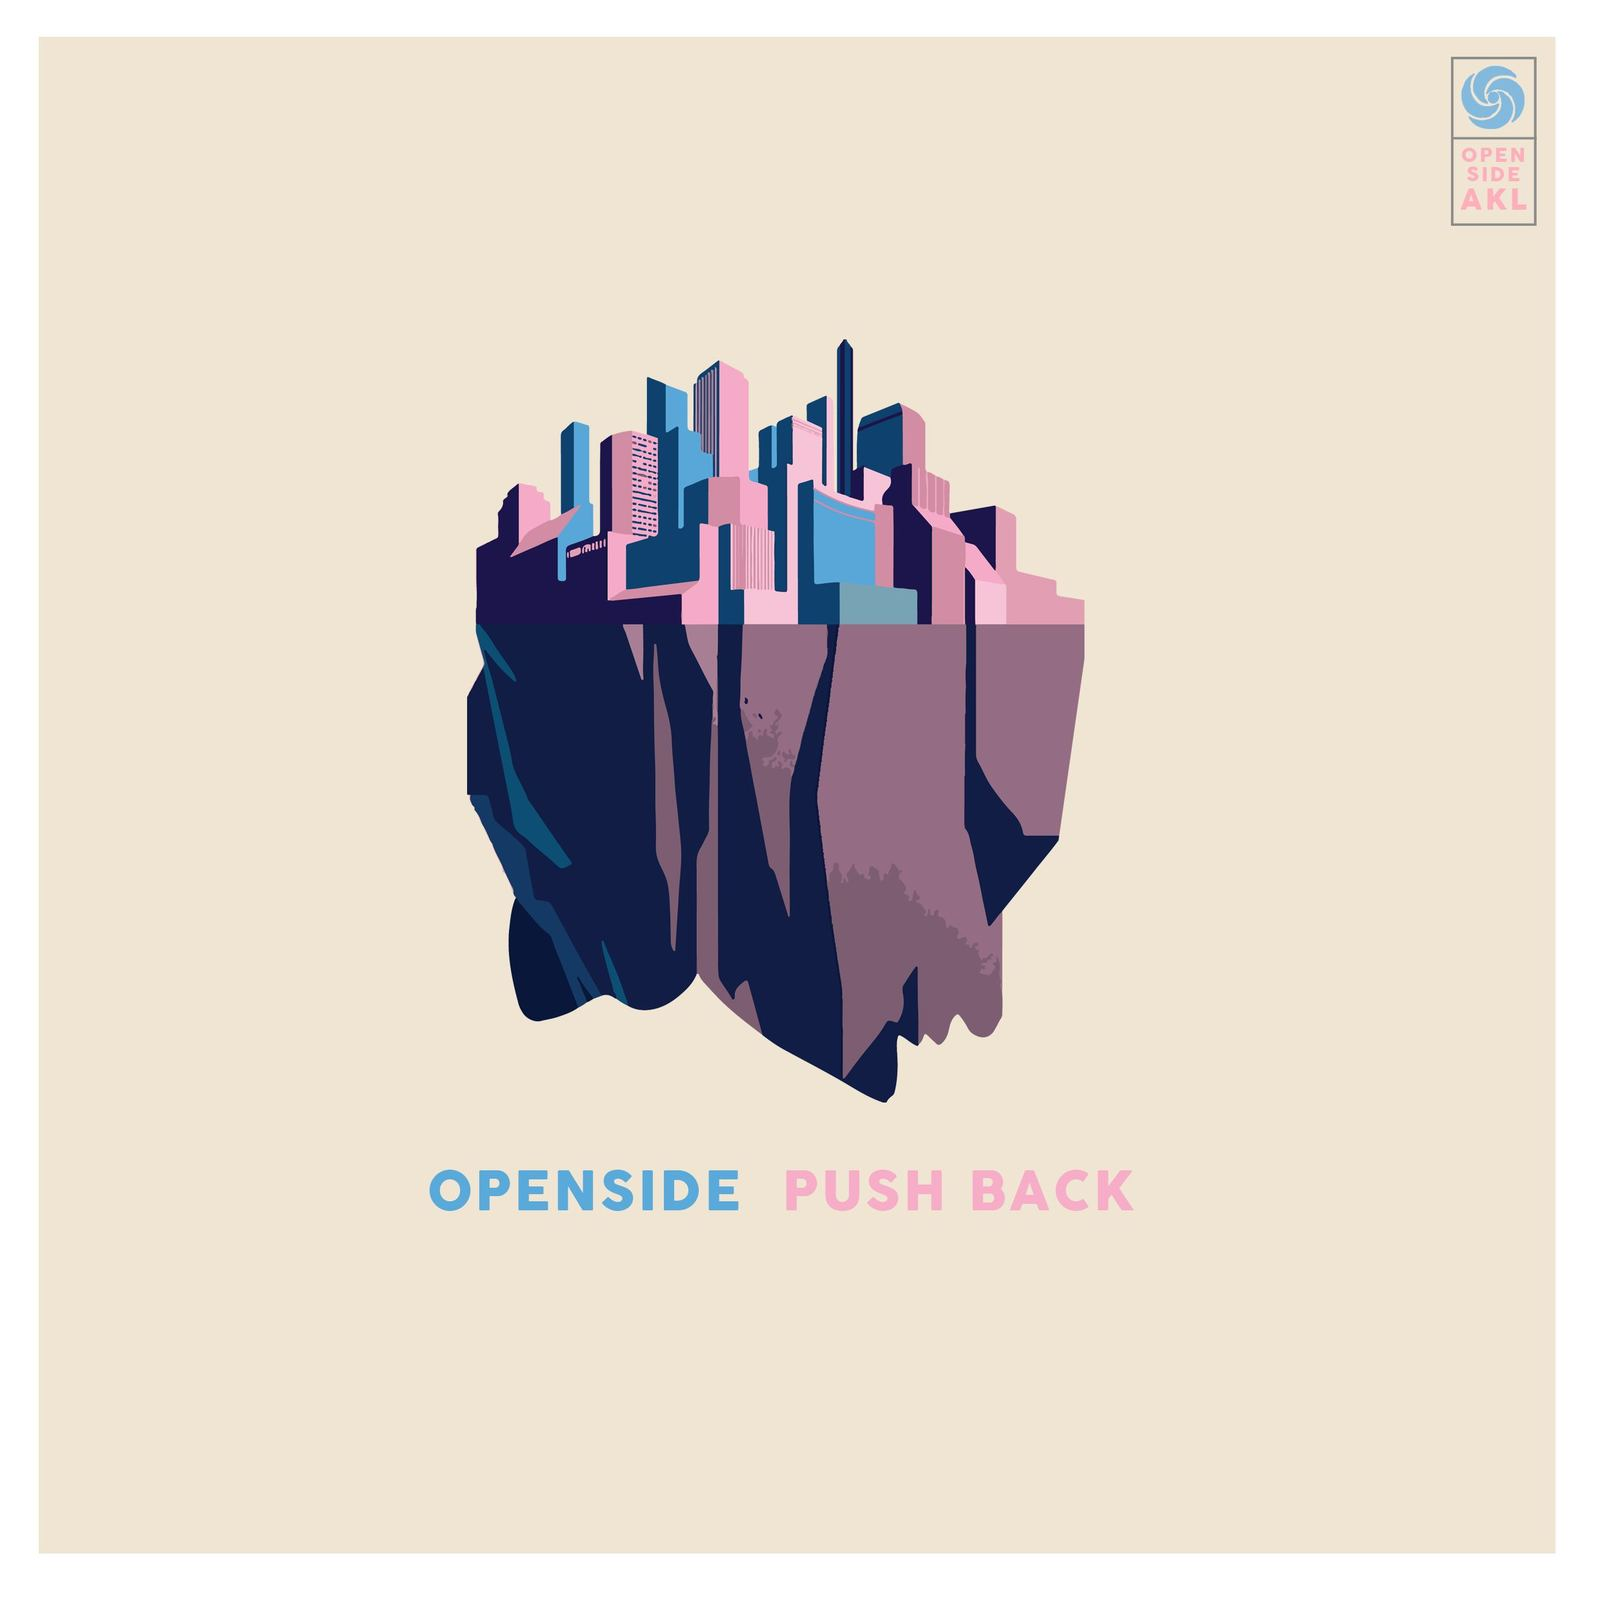 Push Back by Openside image